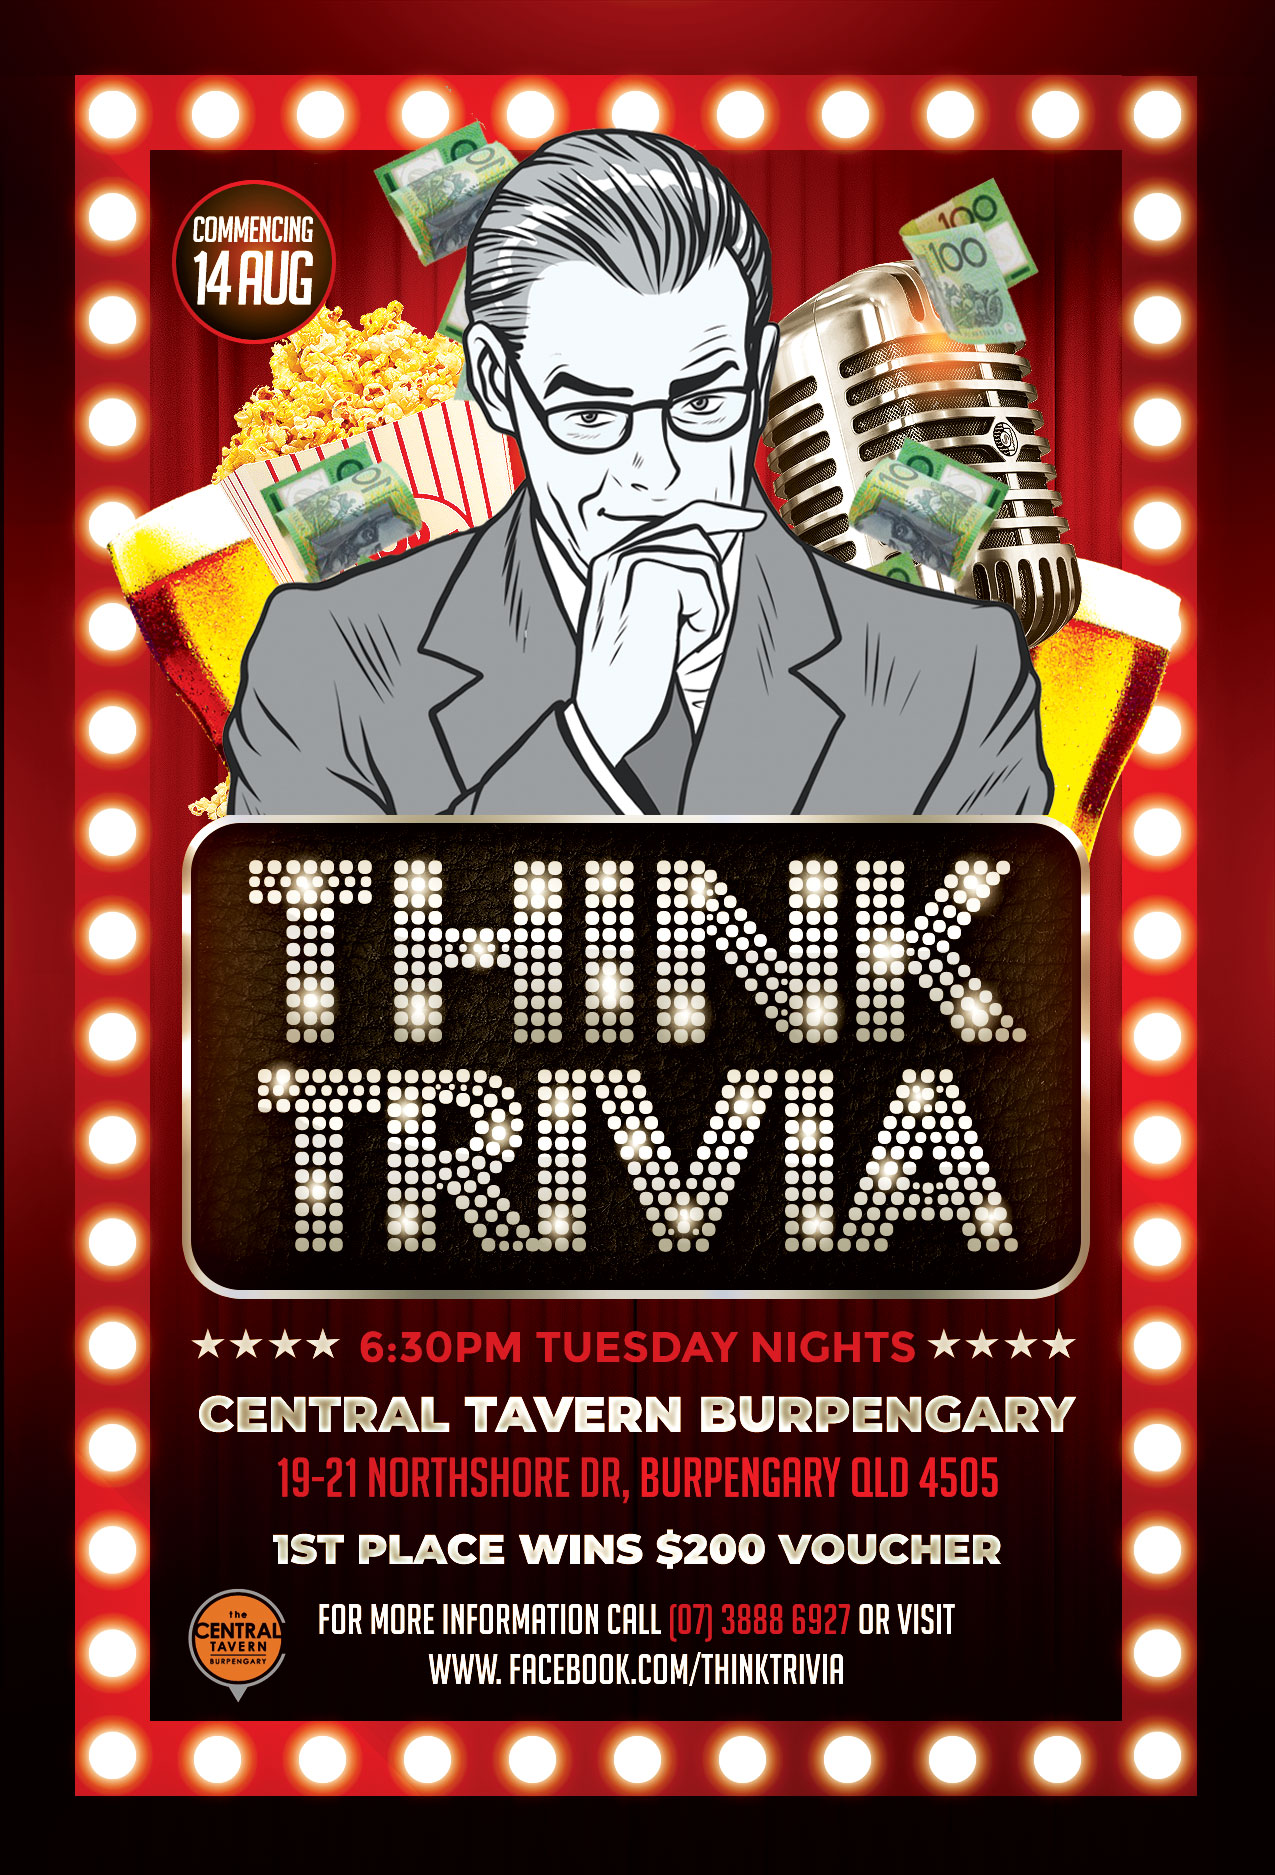 Central Tavern Burpengary - Tuesday Night Trivia @ Central Tavern Burpengary | Burpengary | Queensland | Australia